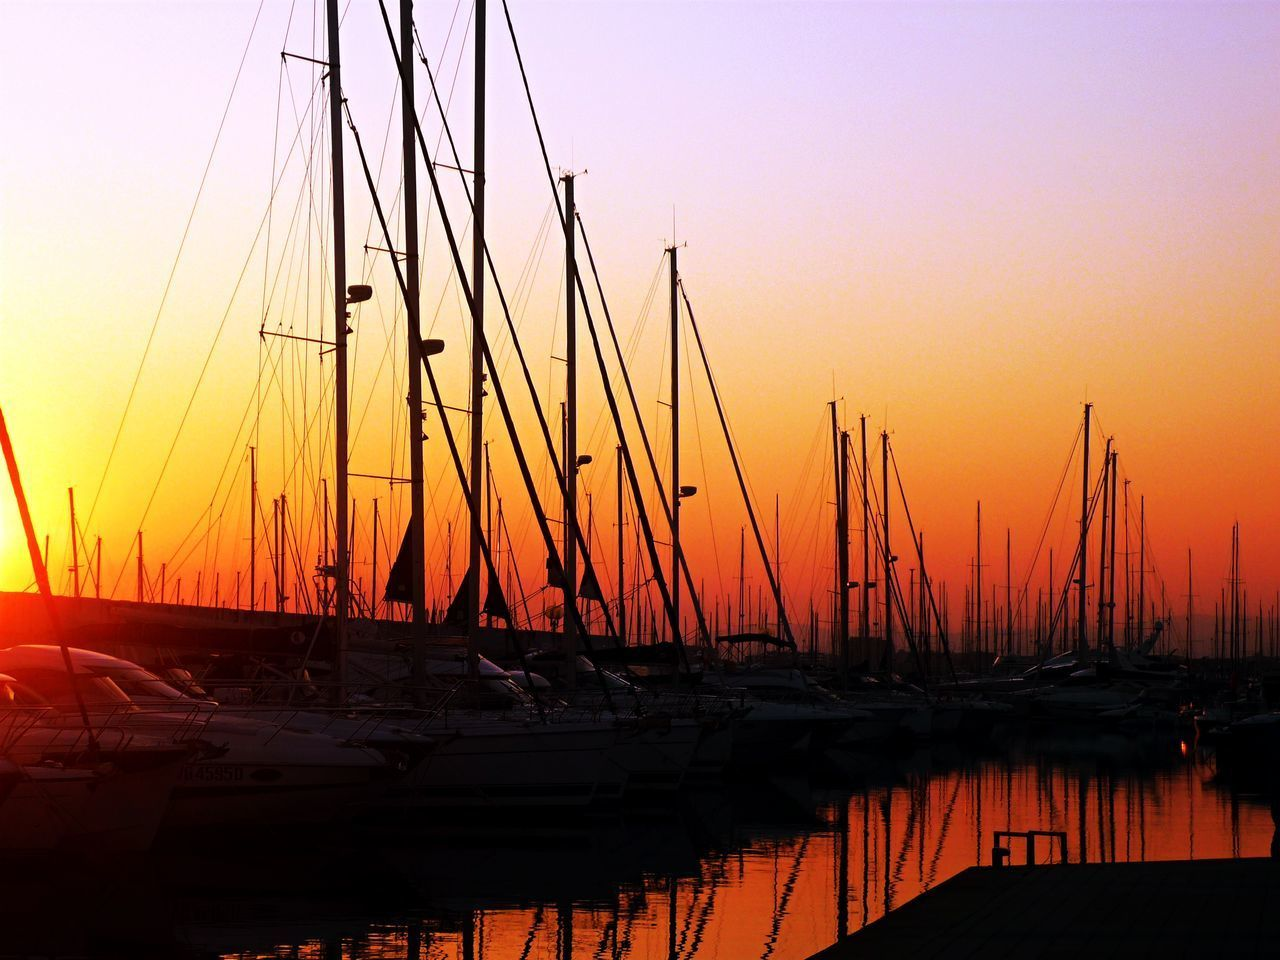 One more sunset photography for my sunset collection. I hope you enjoy it. 🌅 Day Harbor Mast Mode Of Transport Moored Nature Nautical Vessel No People Outdoors Sea Sky Sun Sunset Transportation Water Yacht The Great Outdoors - 2017 EyeEm Awards Coleursunset